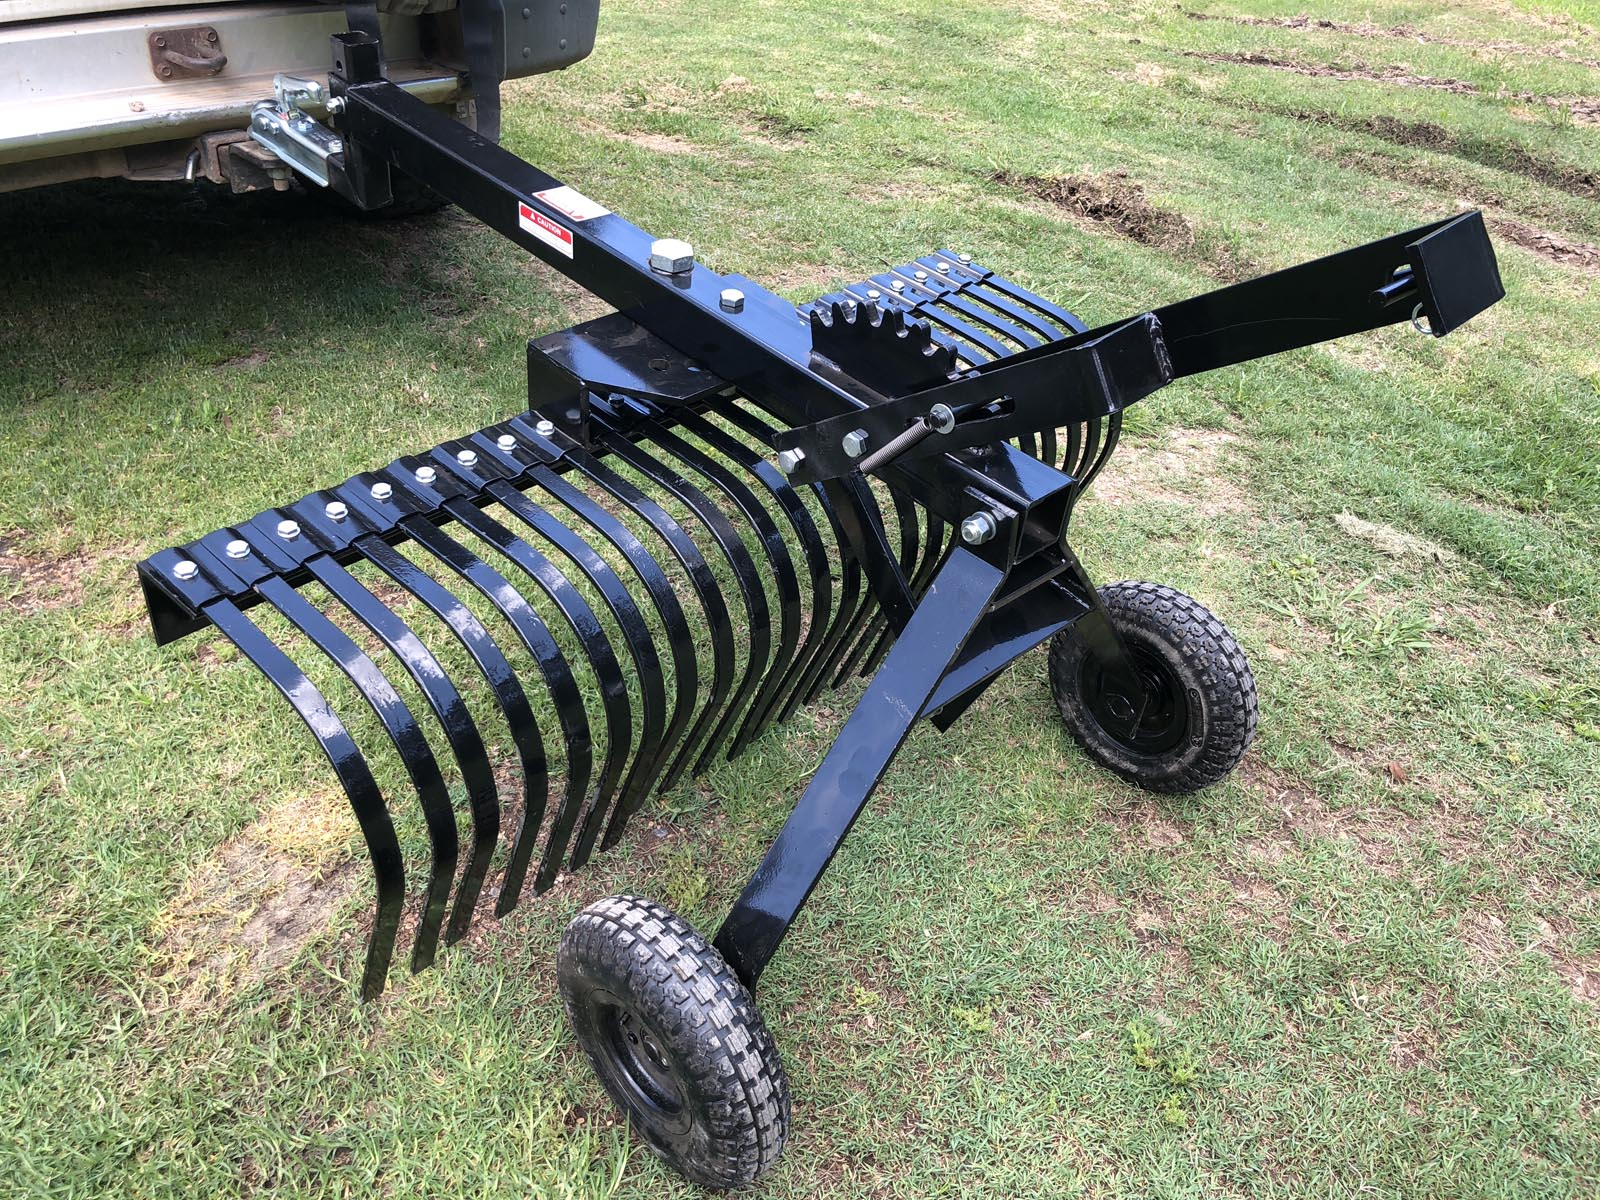 Details about Towable Stick Rake - 4ft - Tow Behind ATV, UTV, Ride-on, Ute,  4WD etc